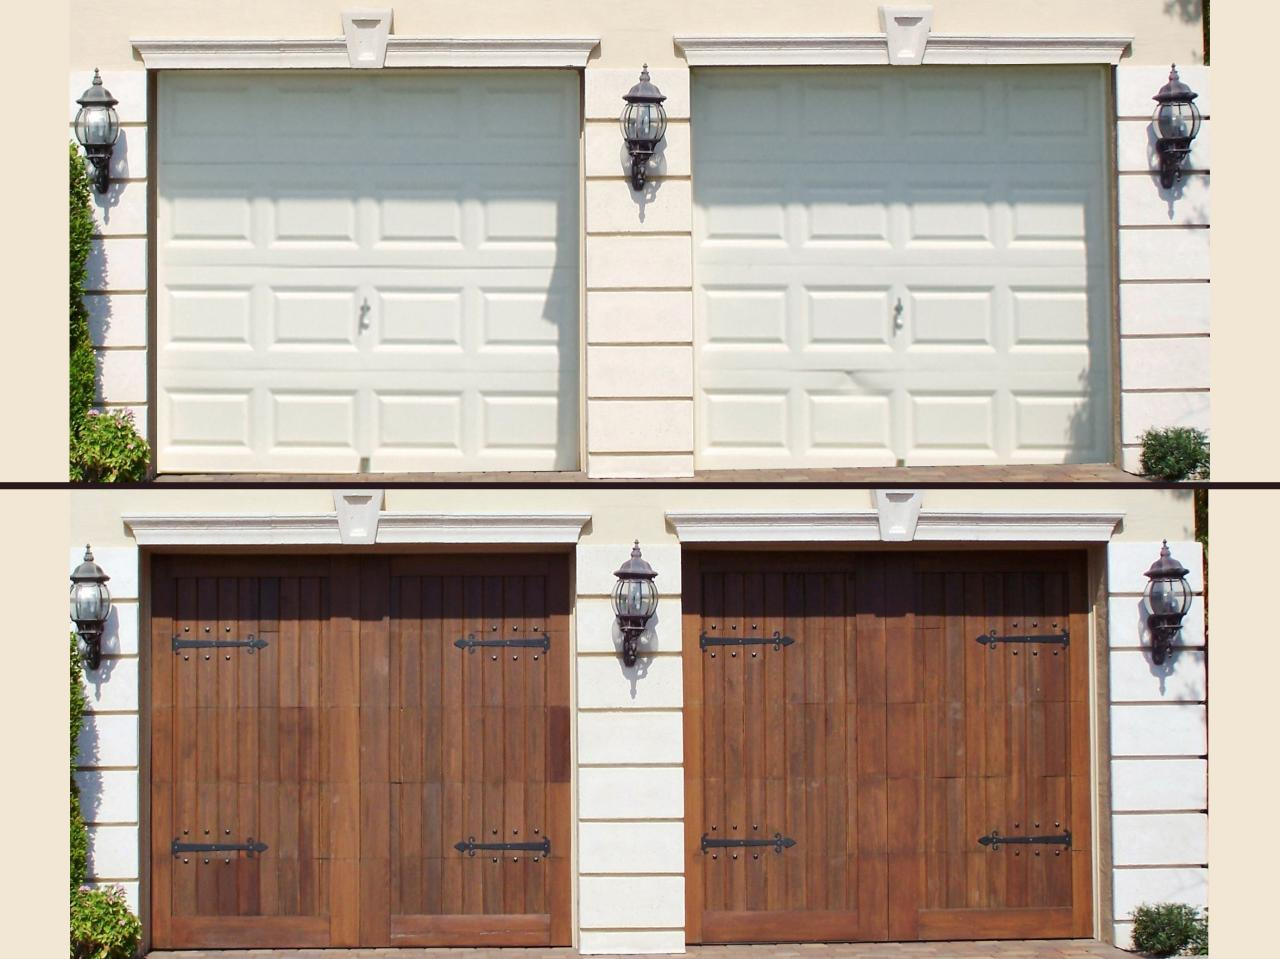 Denver Garage Door | Denver Metro Garage Door